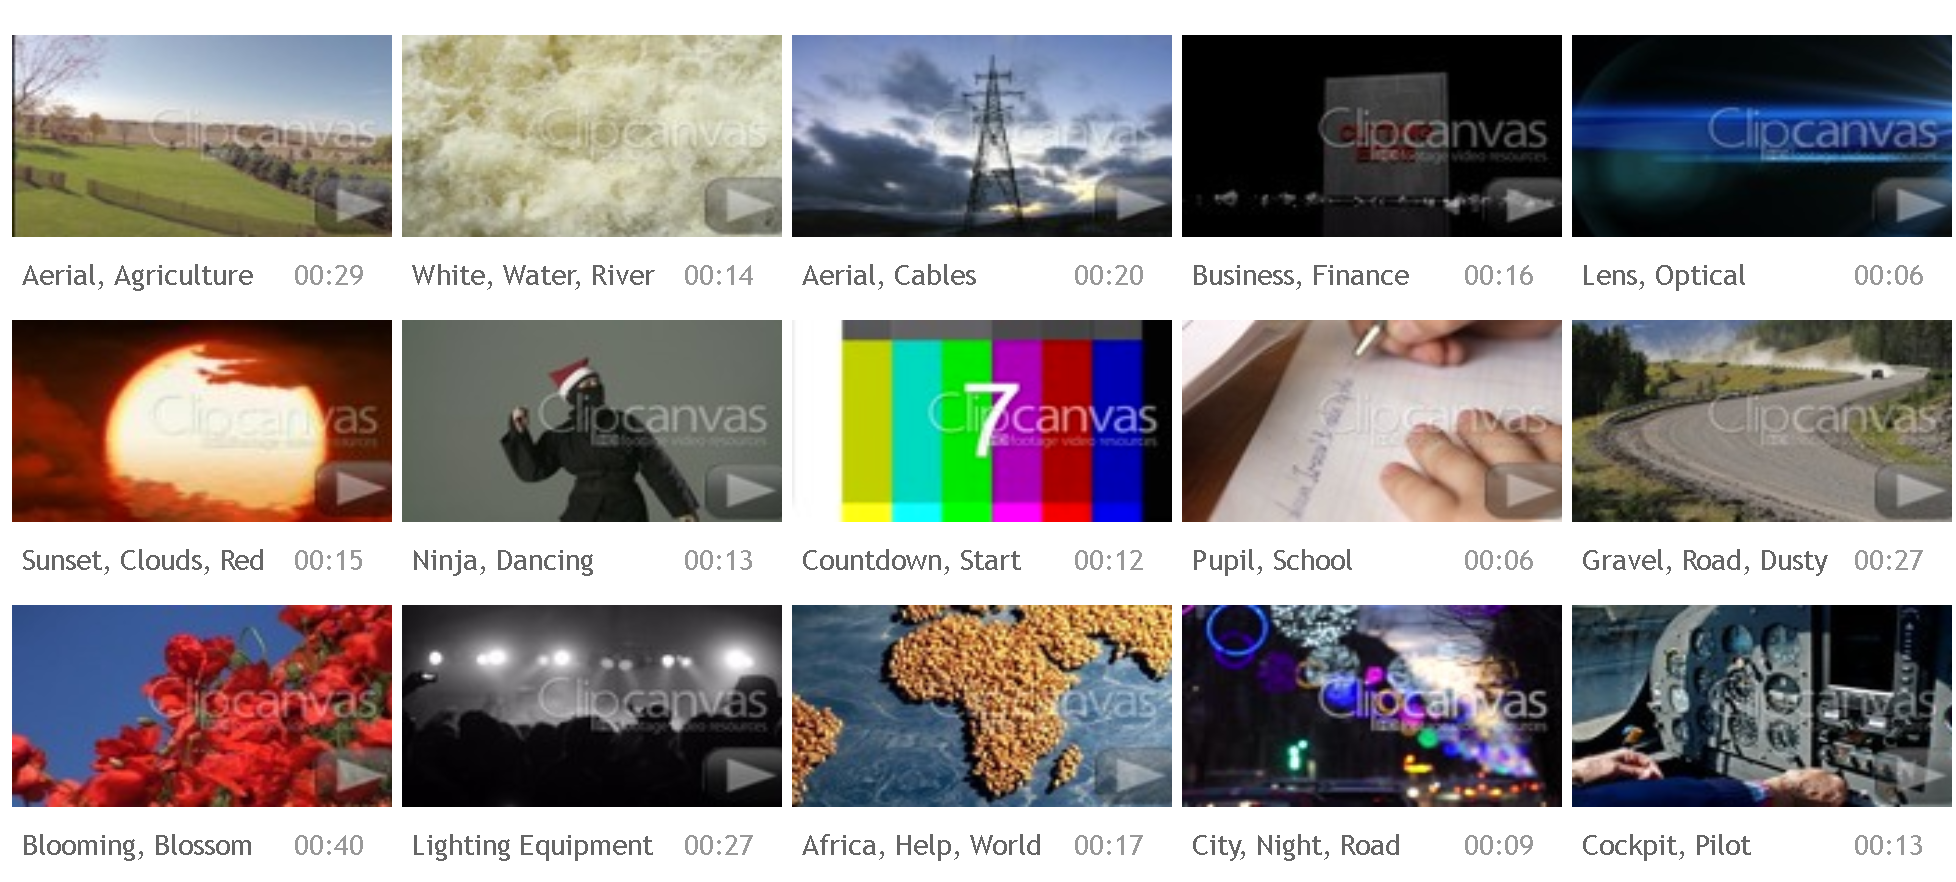 free-stock-video-creative-commons-clipcanvas.PNG